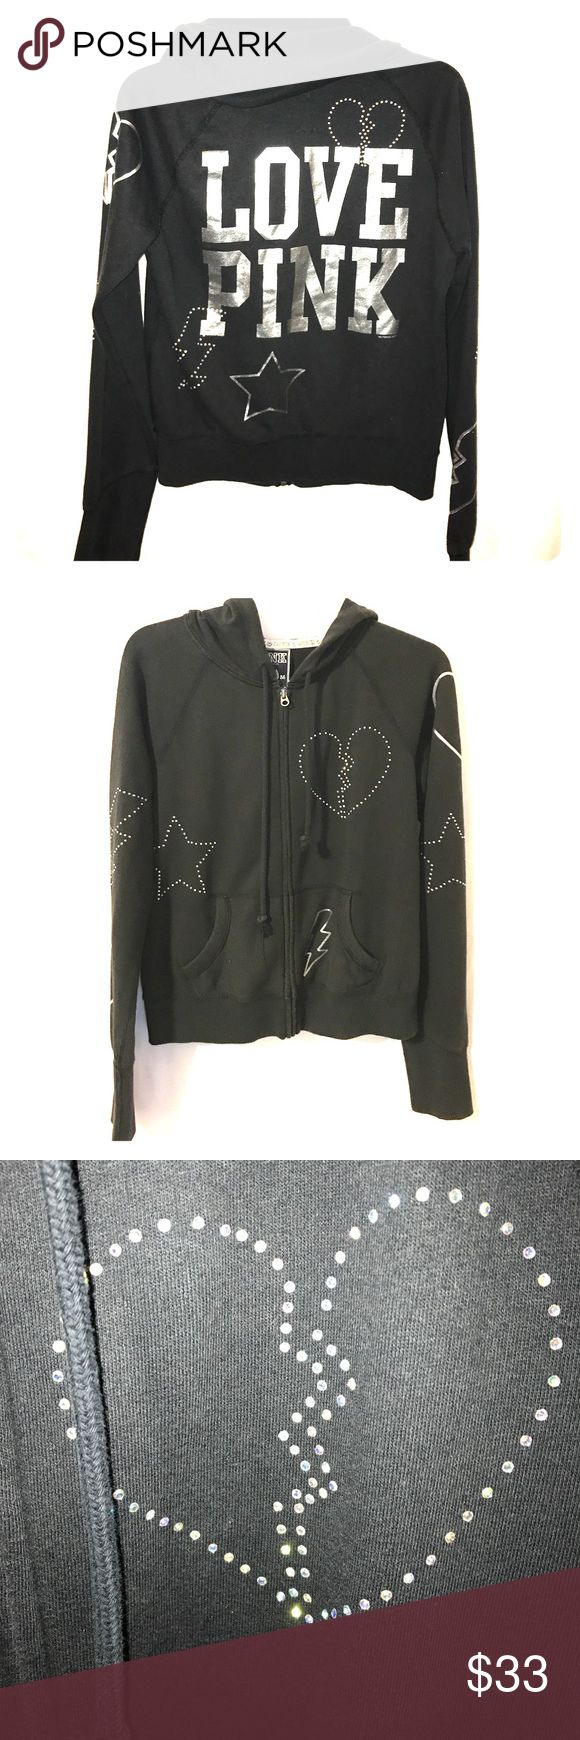 PINK Hoodie Awesome black, zip up hoodie with bling & silver graphics PINK Victoria's Secret Tops Sweatshirts & Hoodies